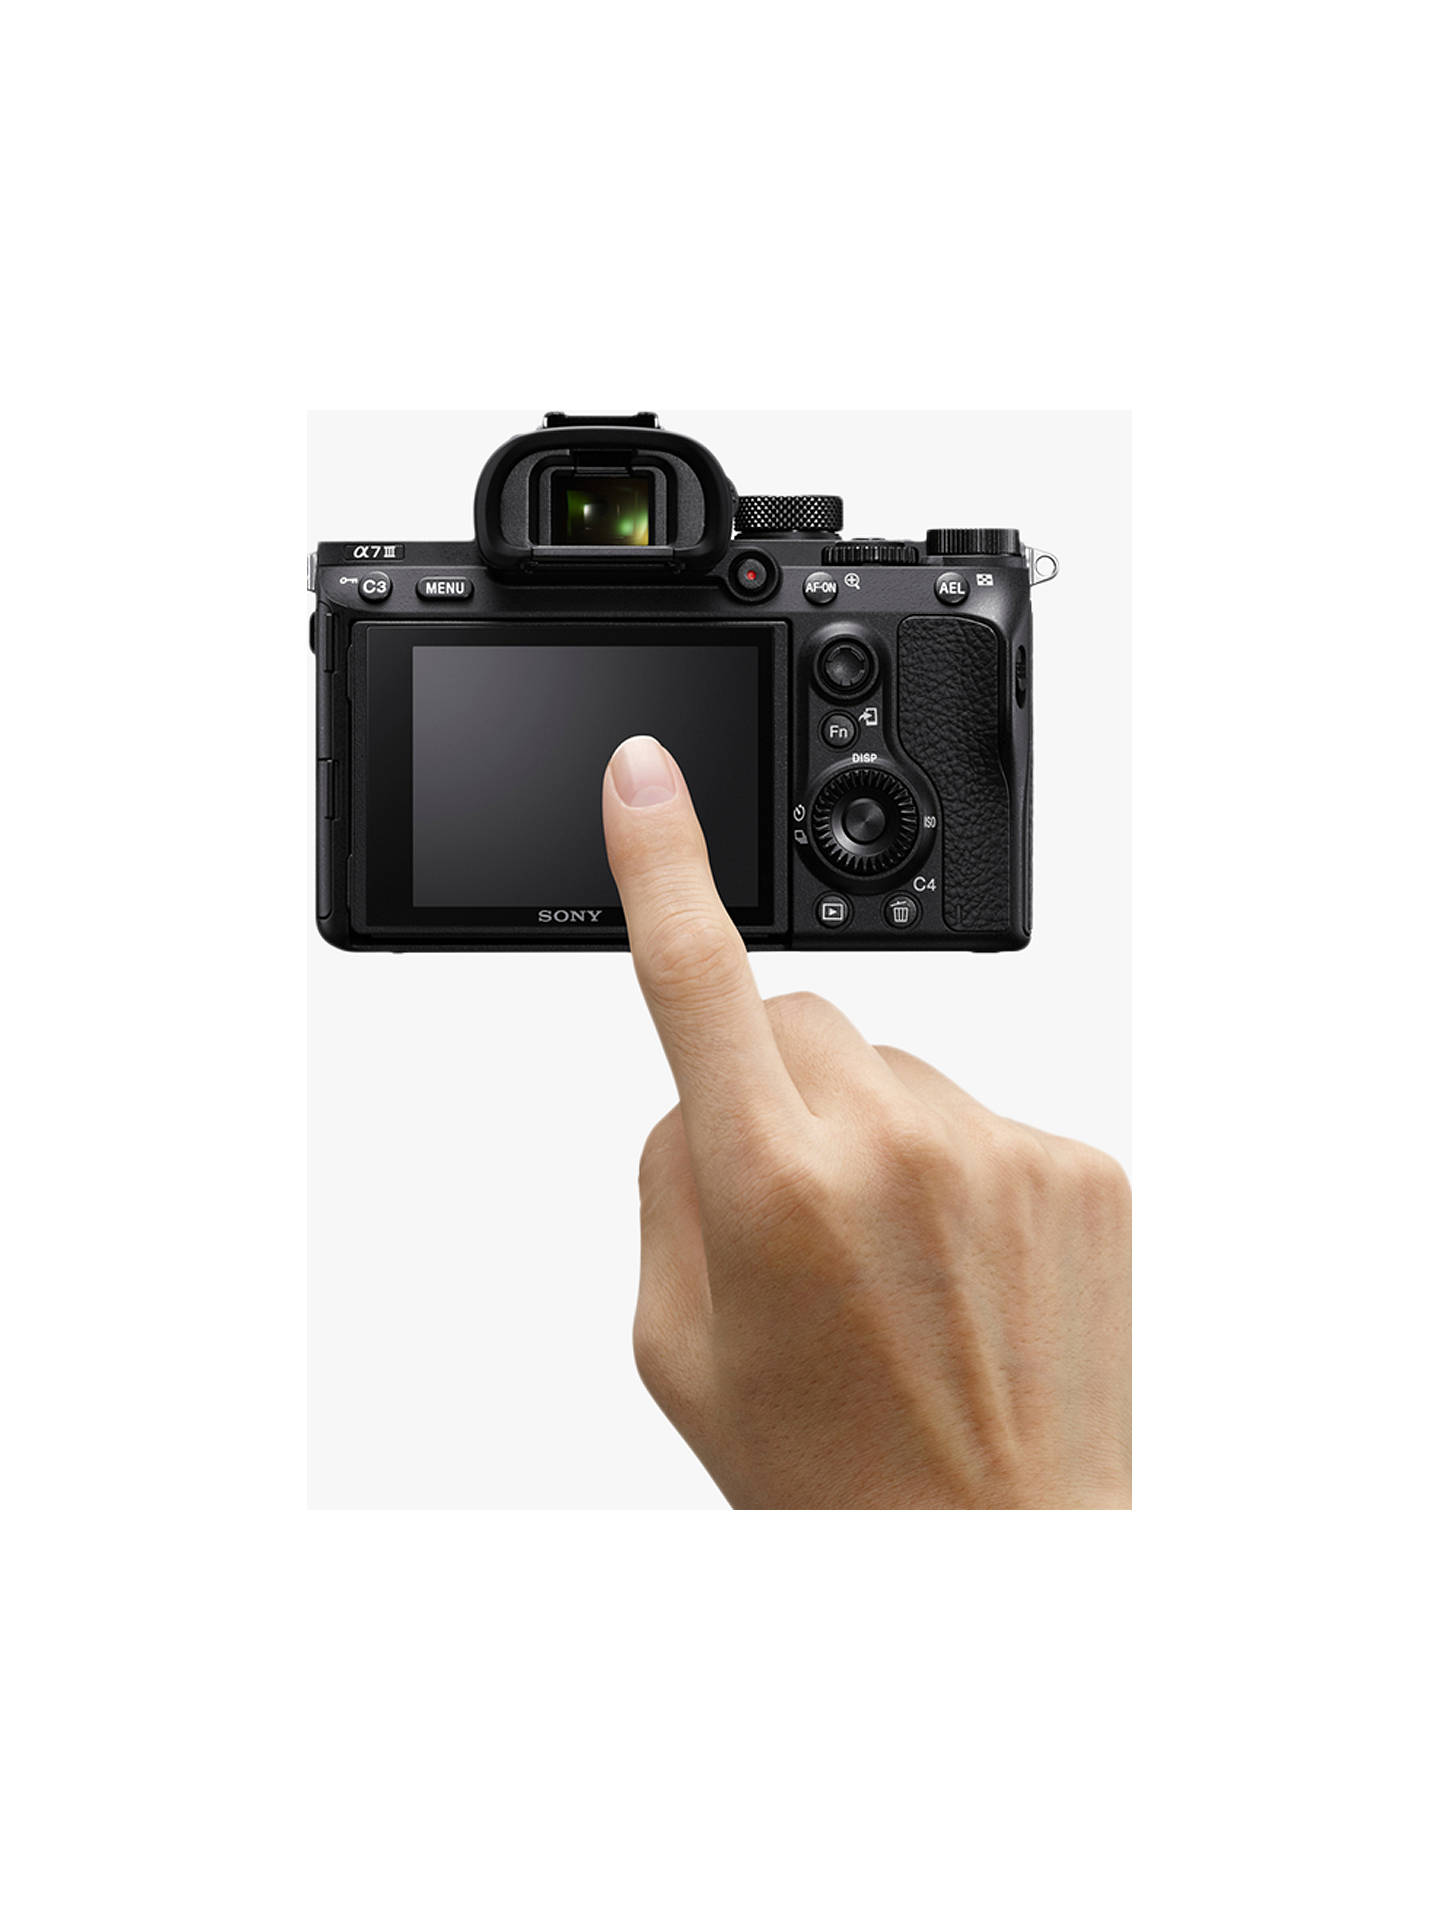 "BuySony a7 III (Alpha ILCE-7M3) Compact System Camera, 4K Ultra HD, 24.2MP, Wi-Fi, Bluetooth, NFC, OLED EVF, 5-Axis Image Stabiliser & Tiltable 3"" LCD Screen, Body Only, Black Online at johnlewis.com"